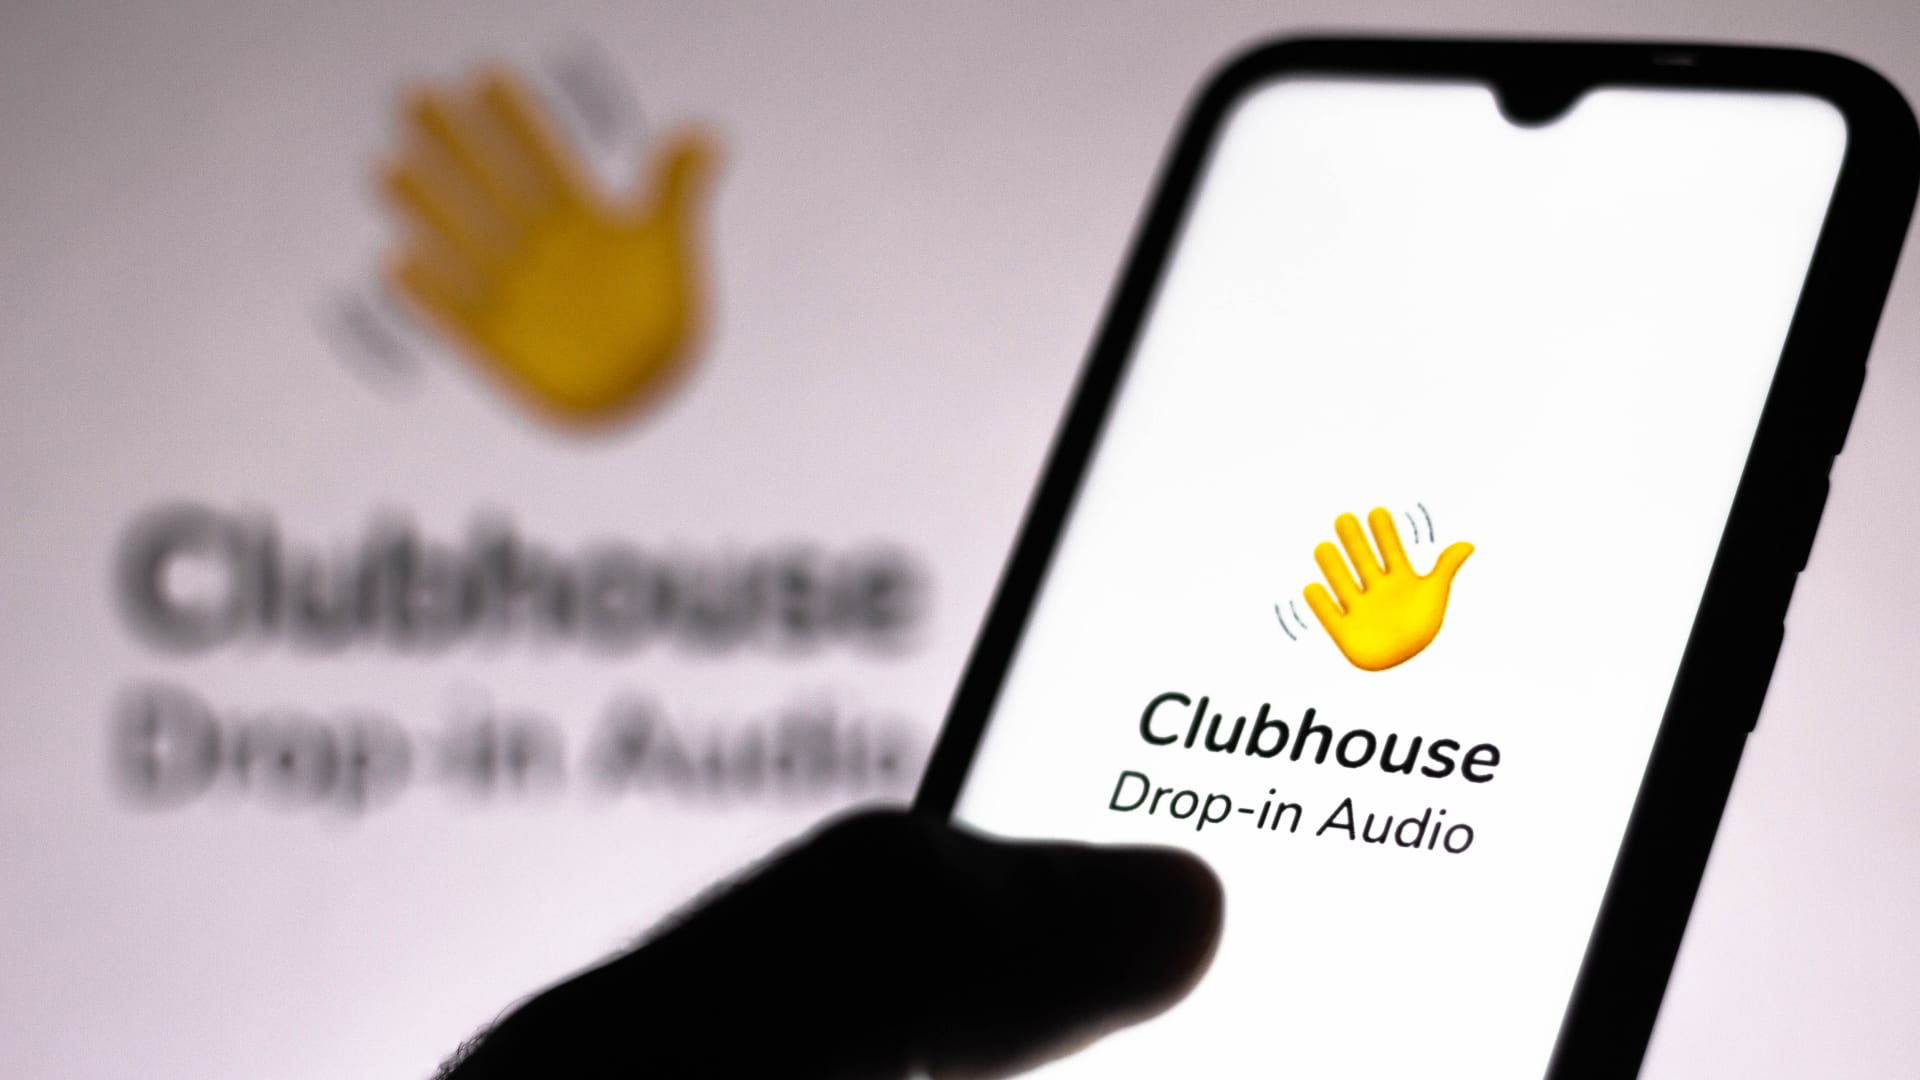 So You Joined Clubhouse. Now What?